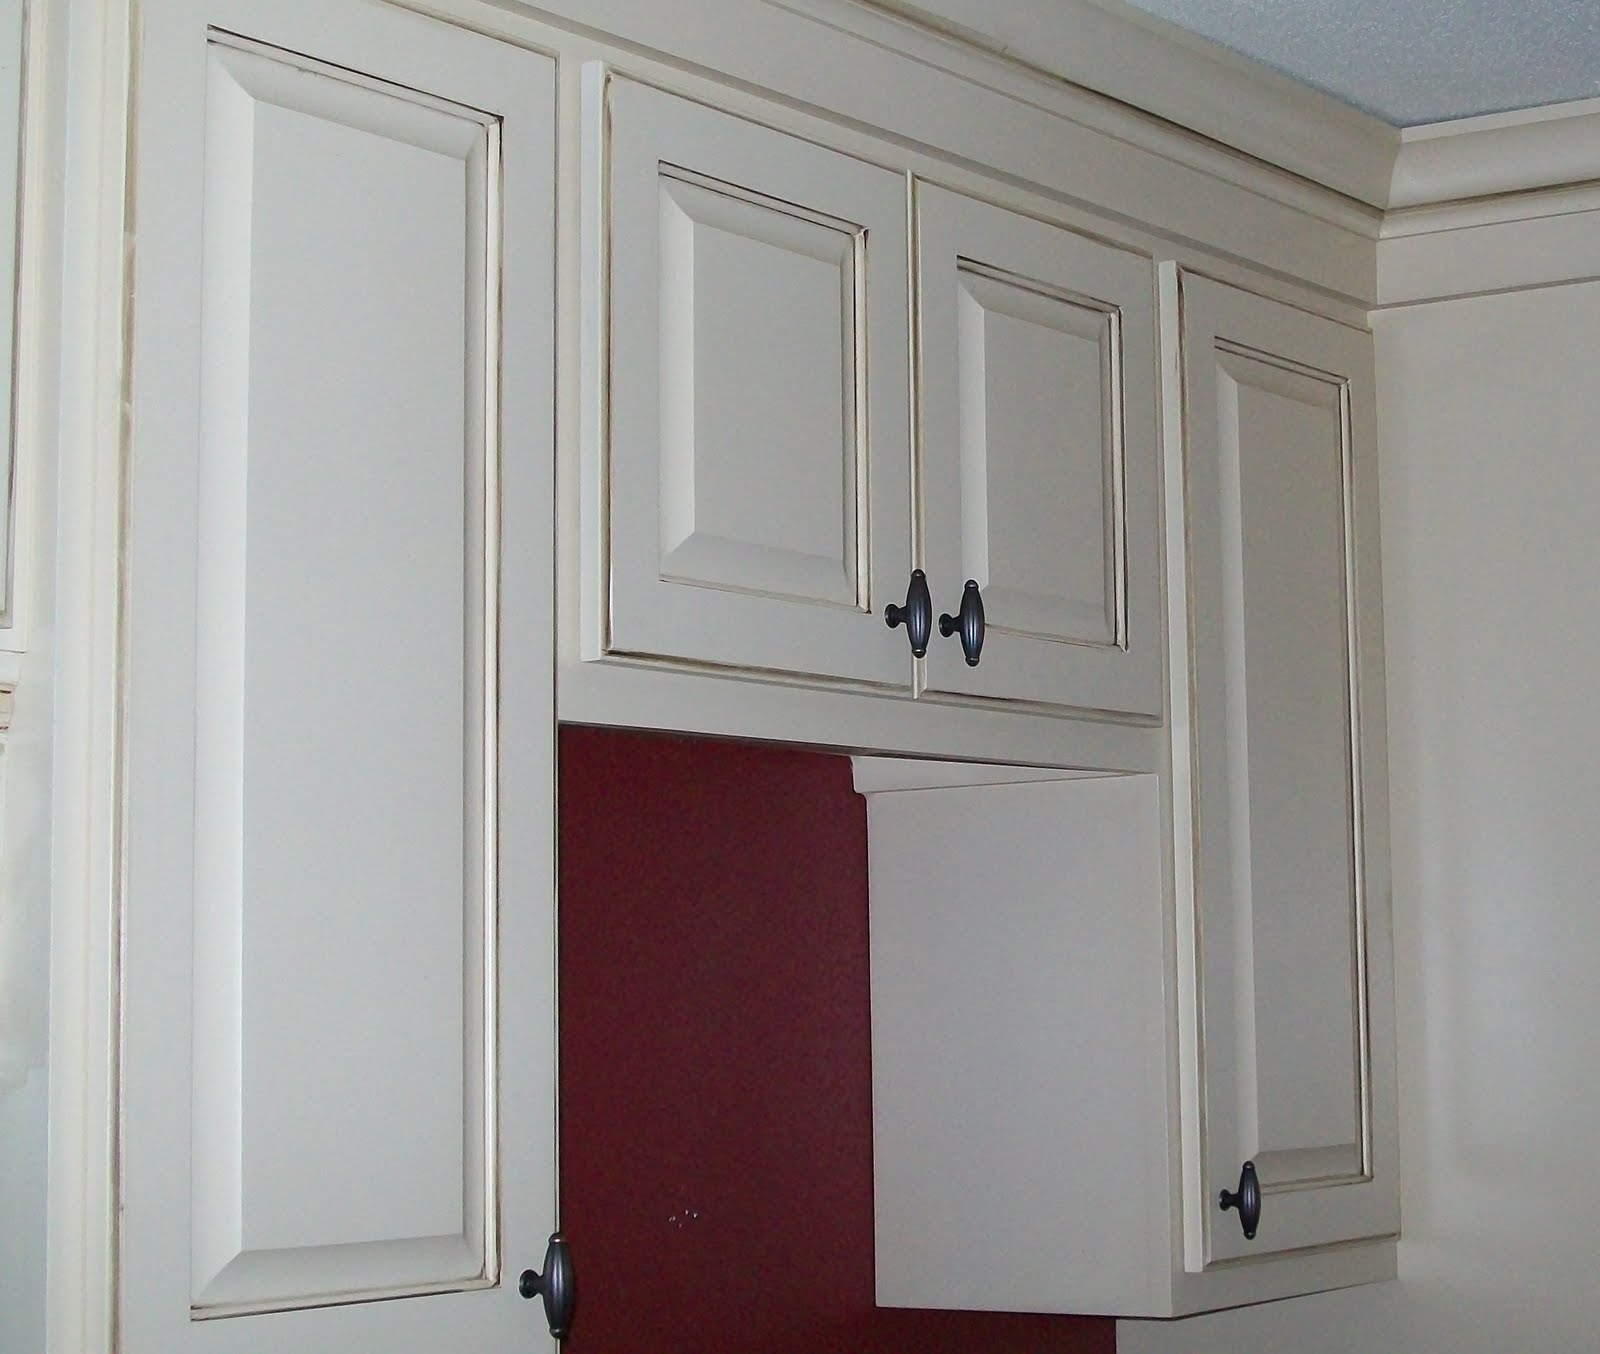 LWi Custom Cabinets: Glazed cabinets- the newest way